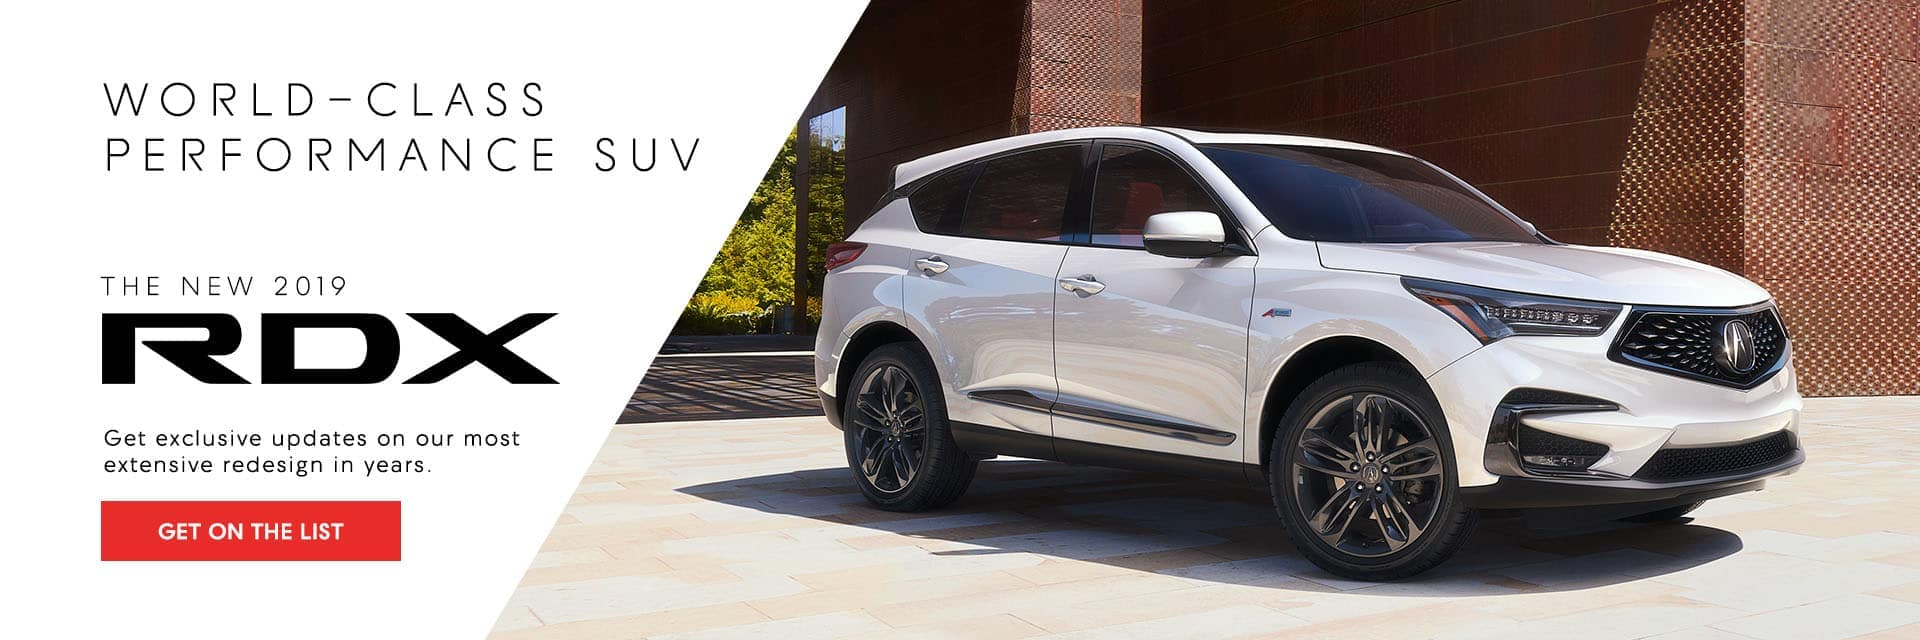 2019 Acura RDX Get on the List Banner